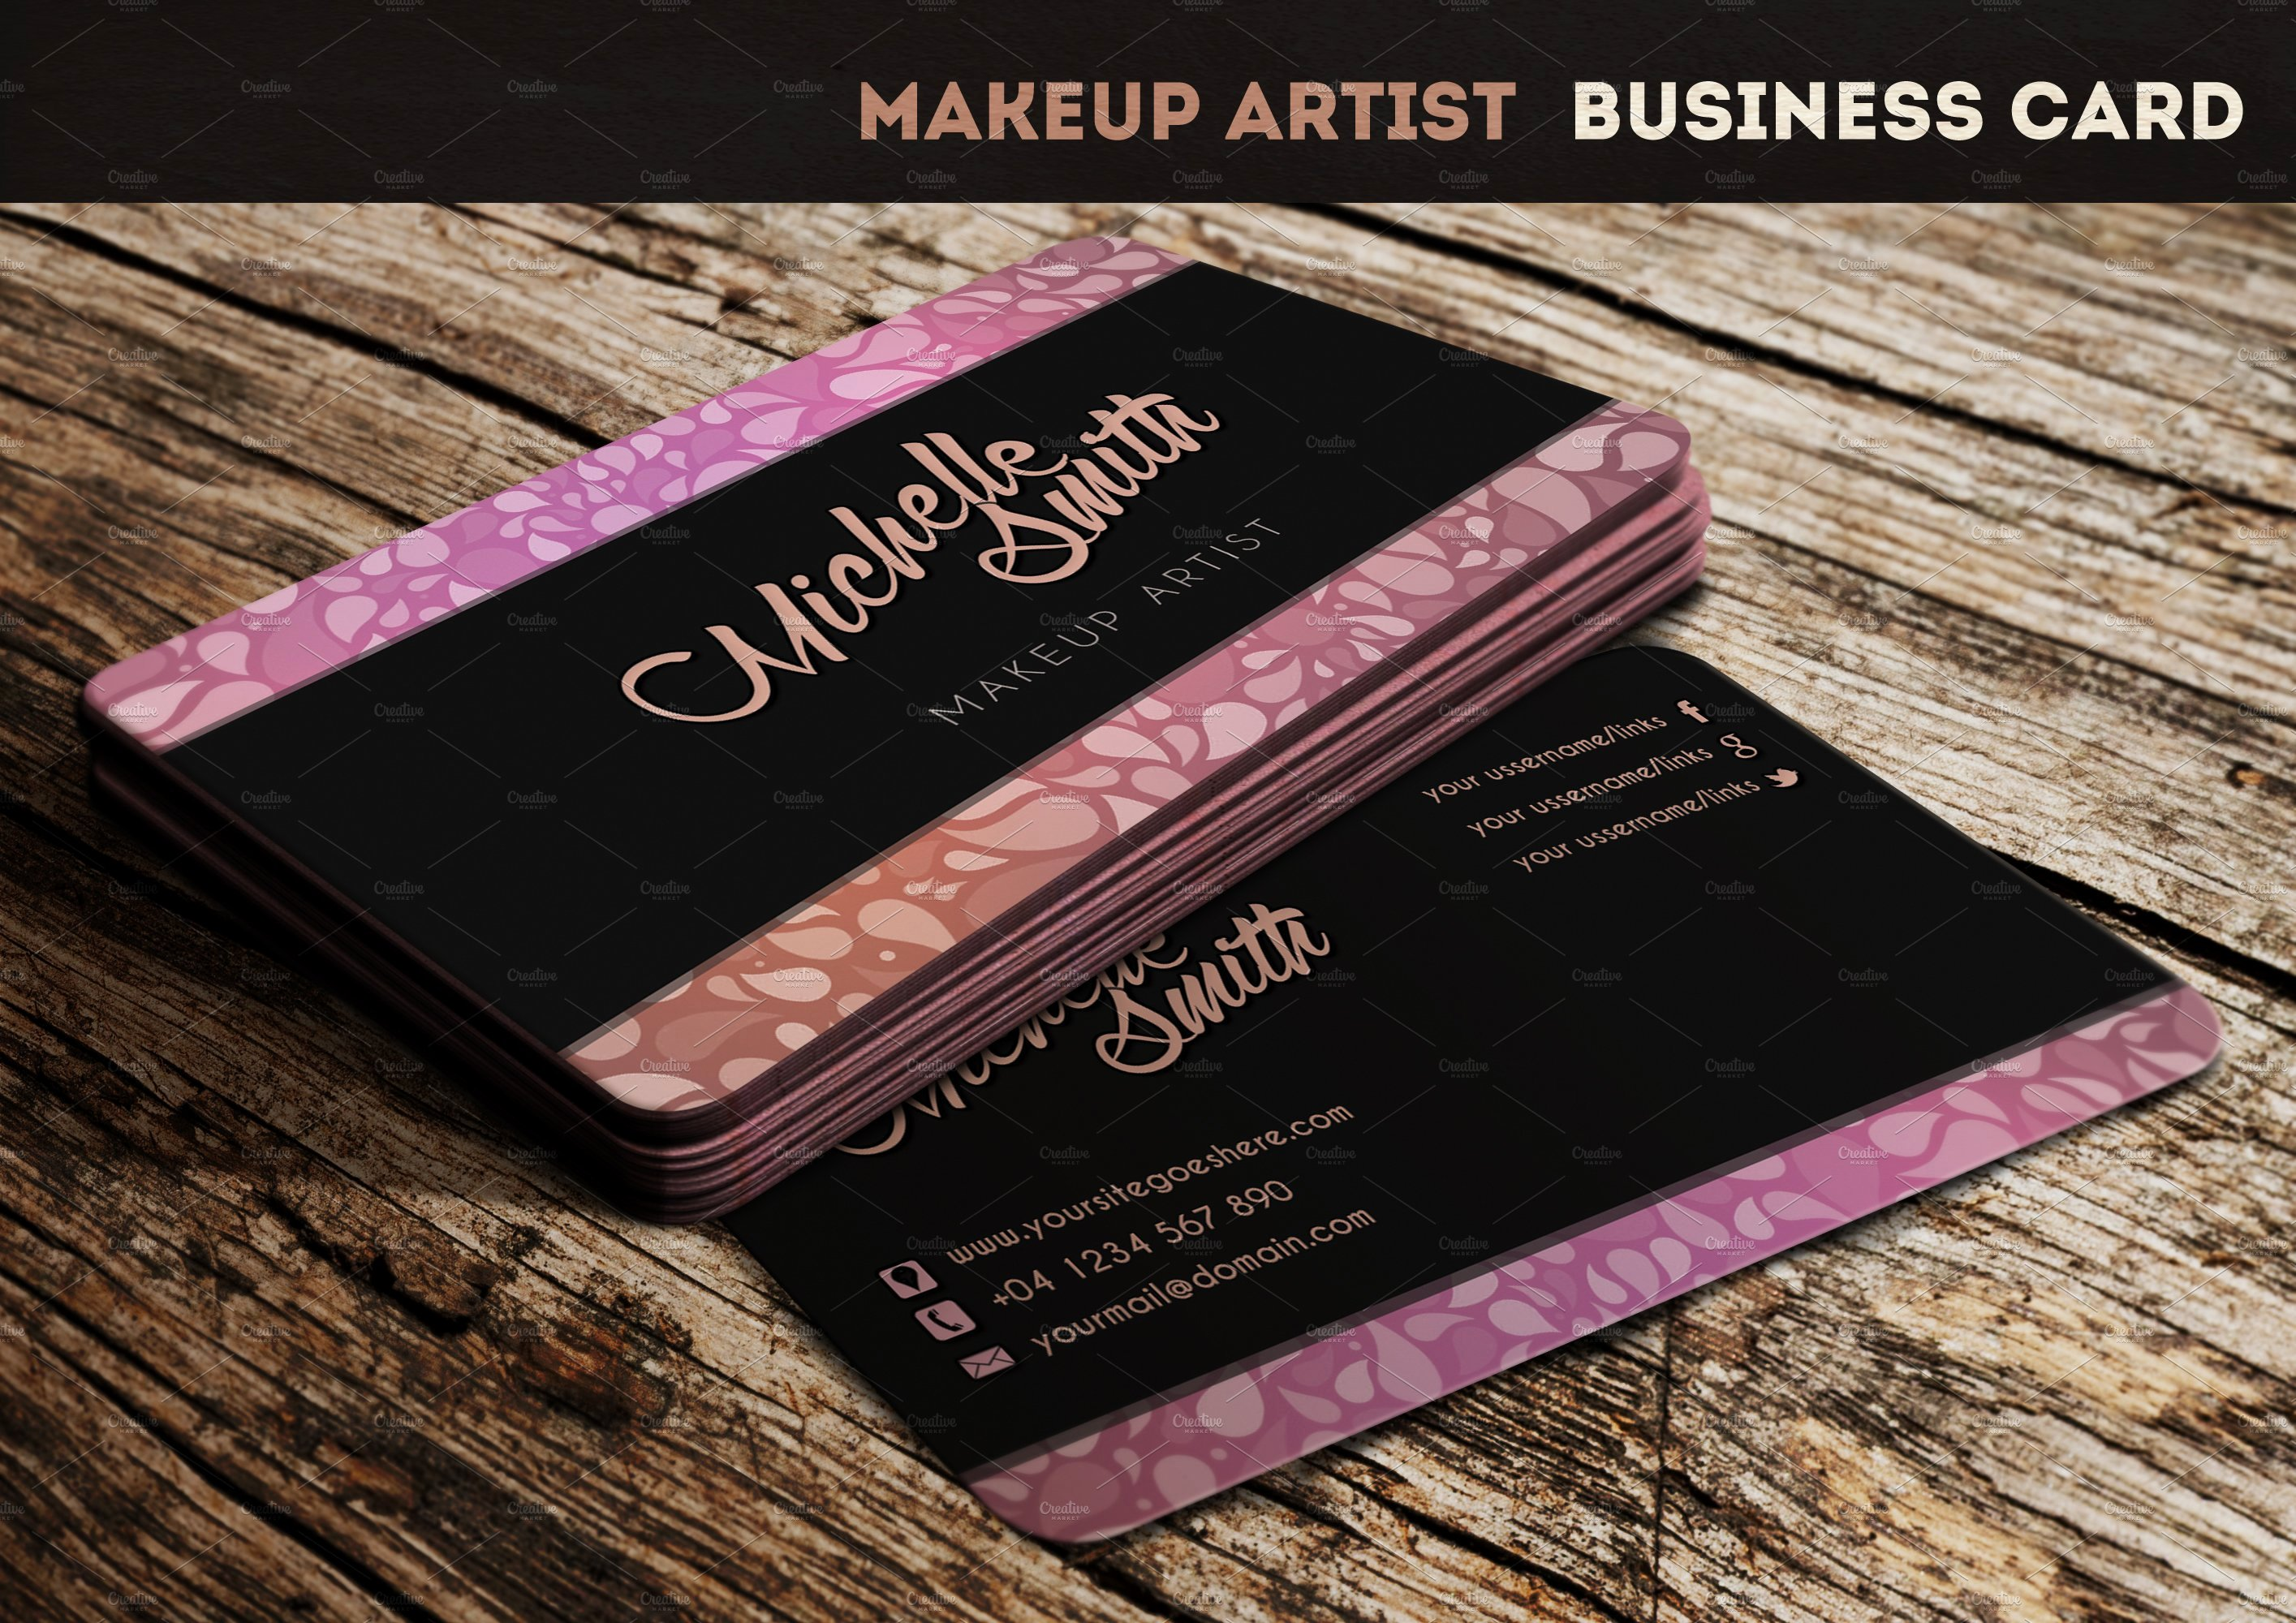 Business Cards for Makeup Artist Luxury Makeup Artist Business Card Business Card Templates Creative Market